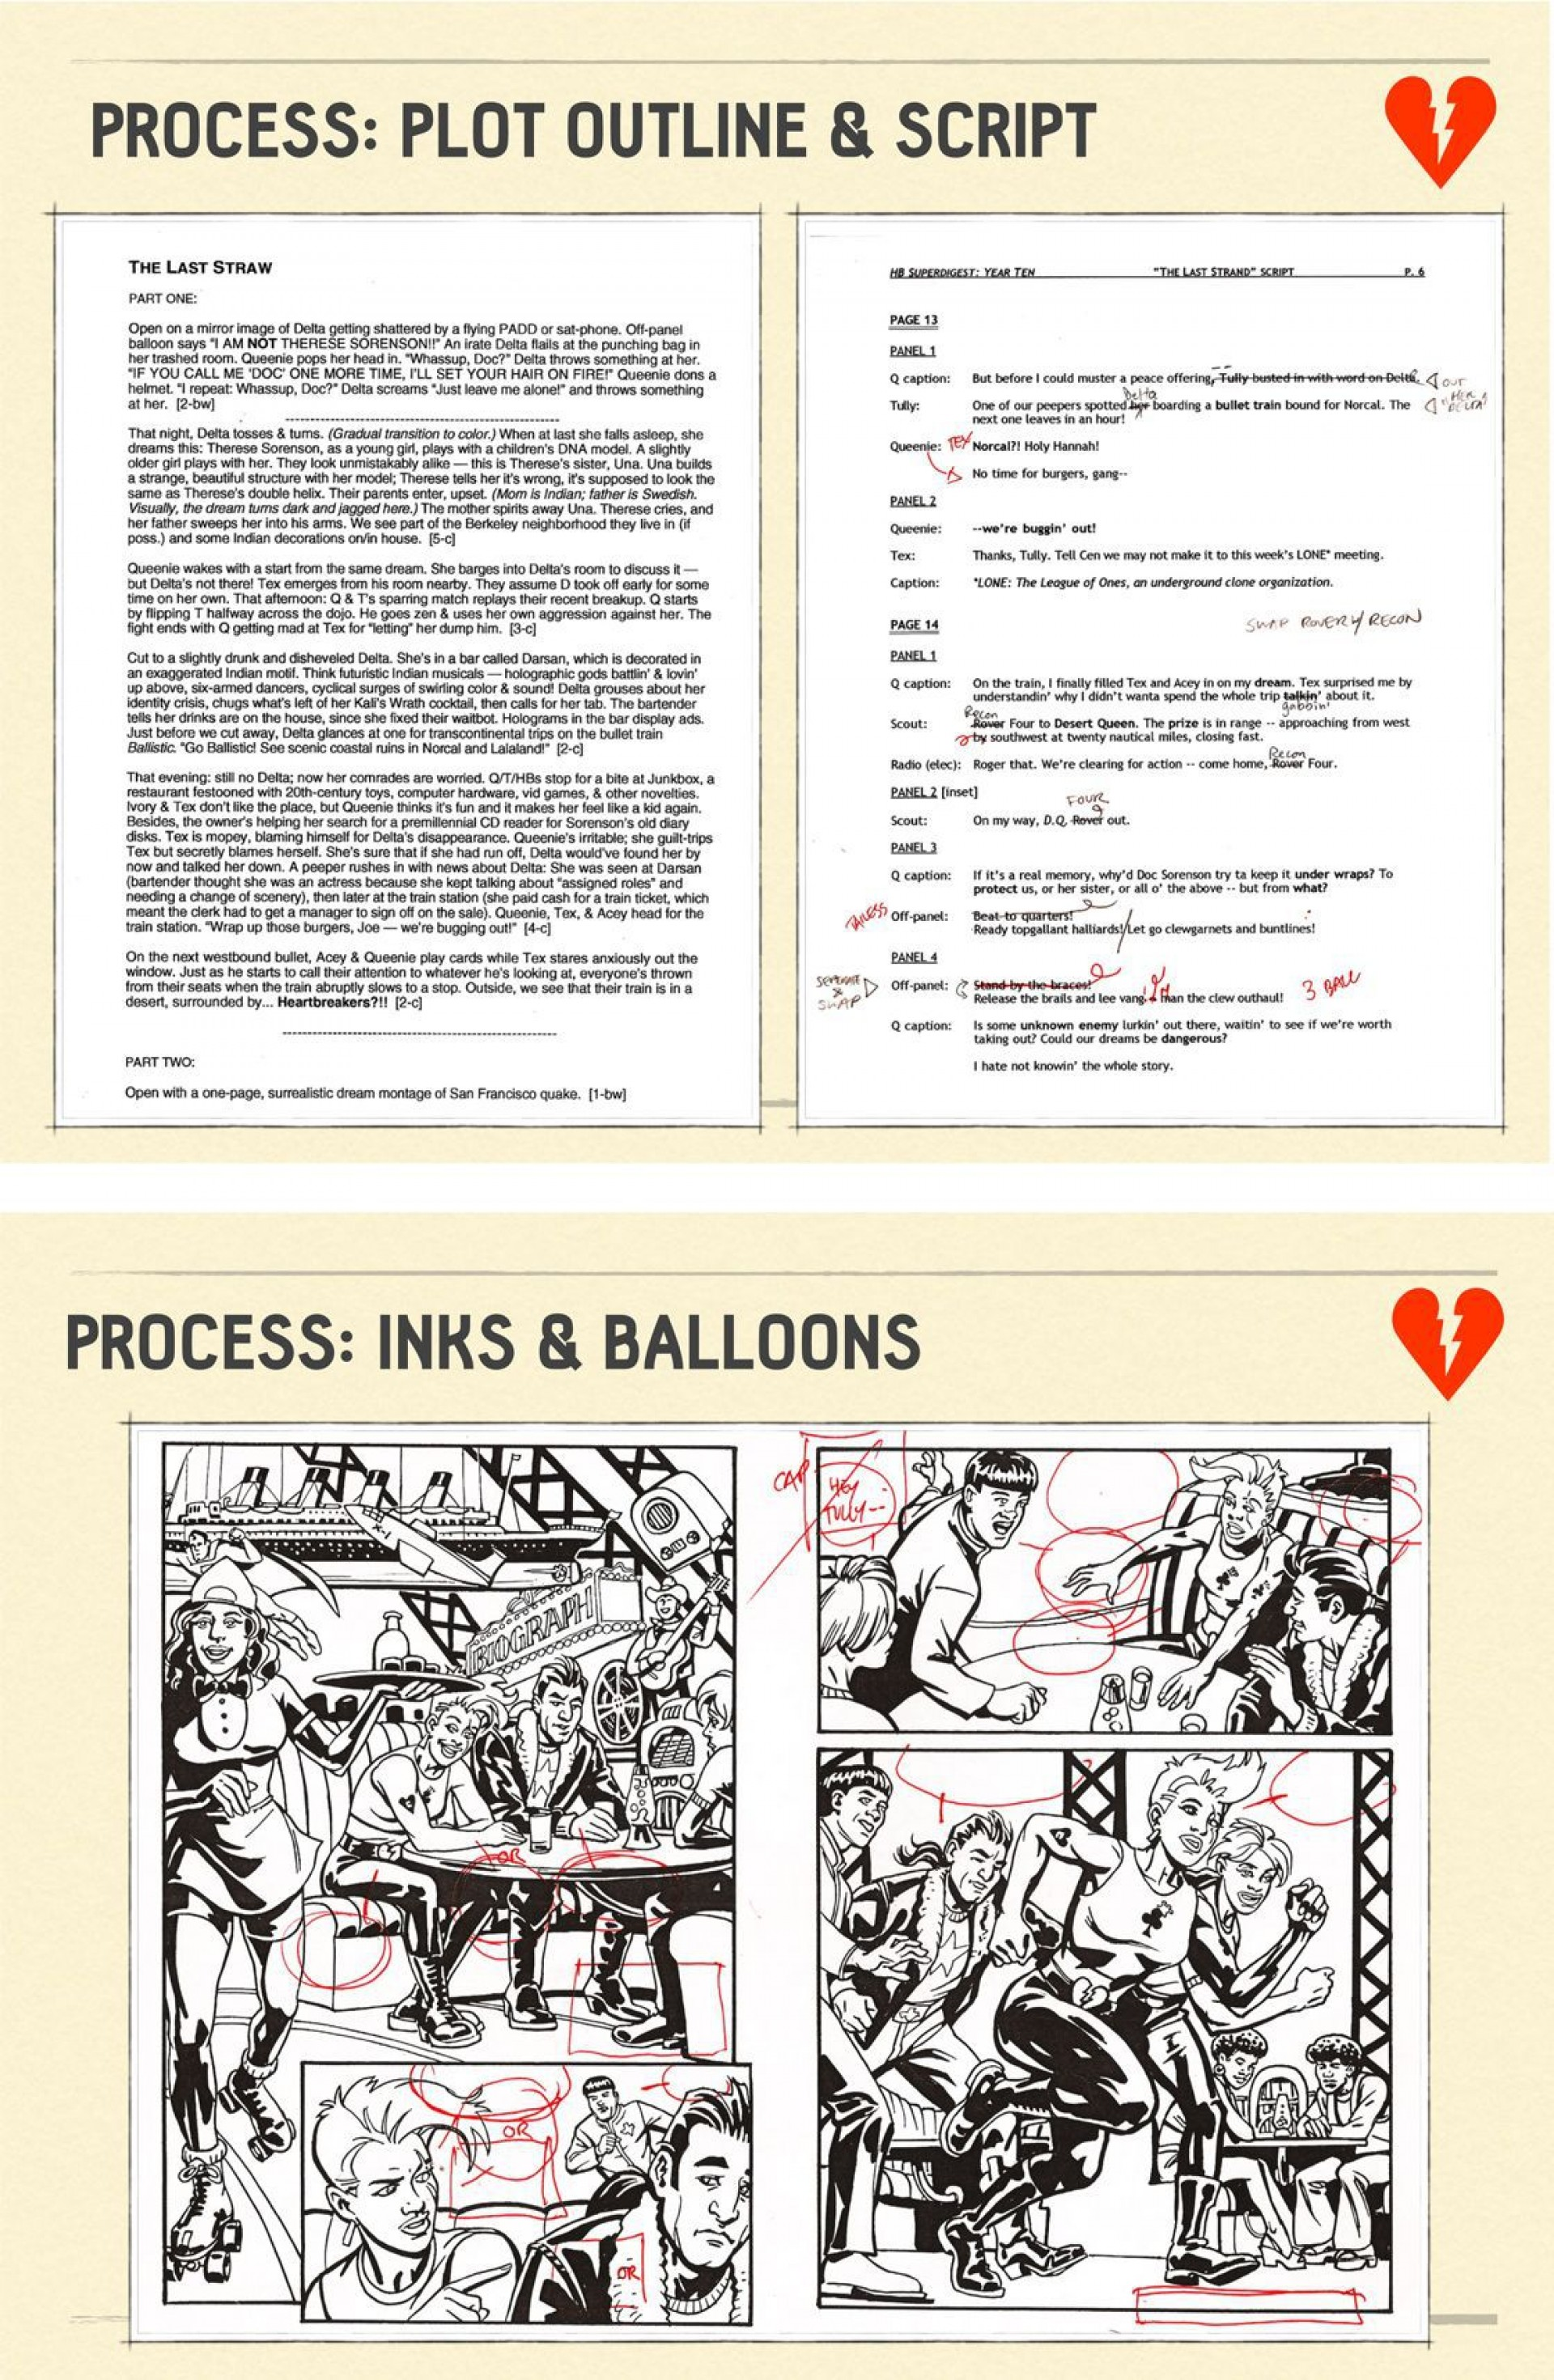 001 Marvelou Comic Book Script Writing Format Concept  Example1920